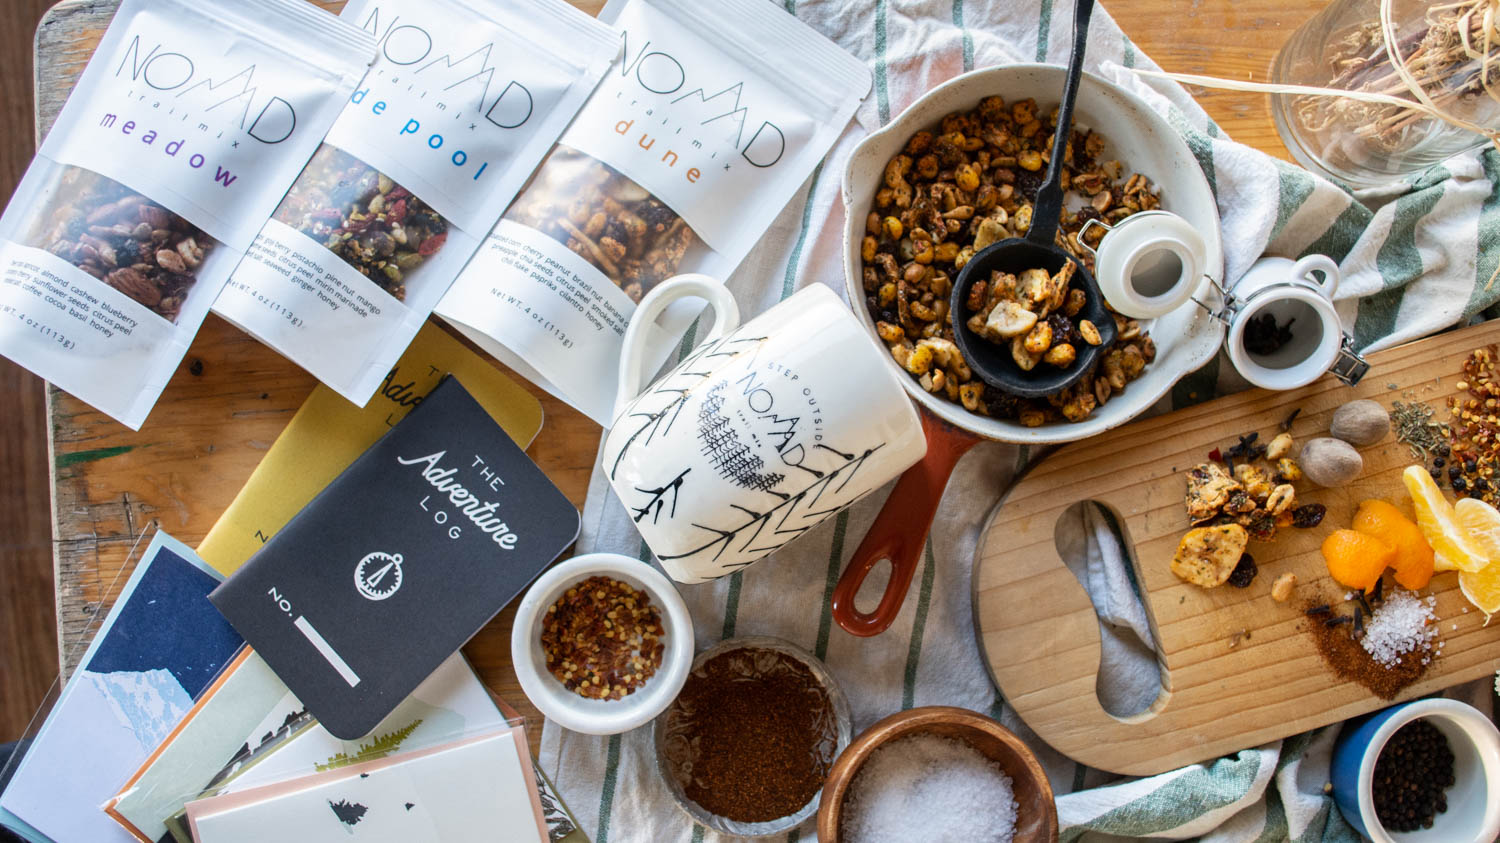 Nomad trail mix, coffee mug, notebooks, spread out on table.